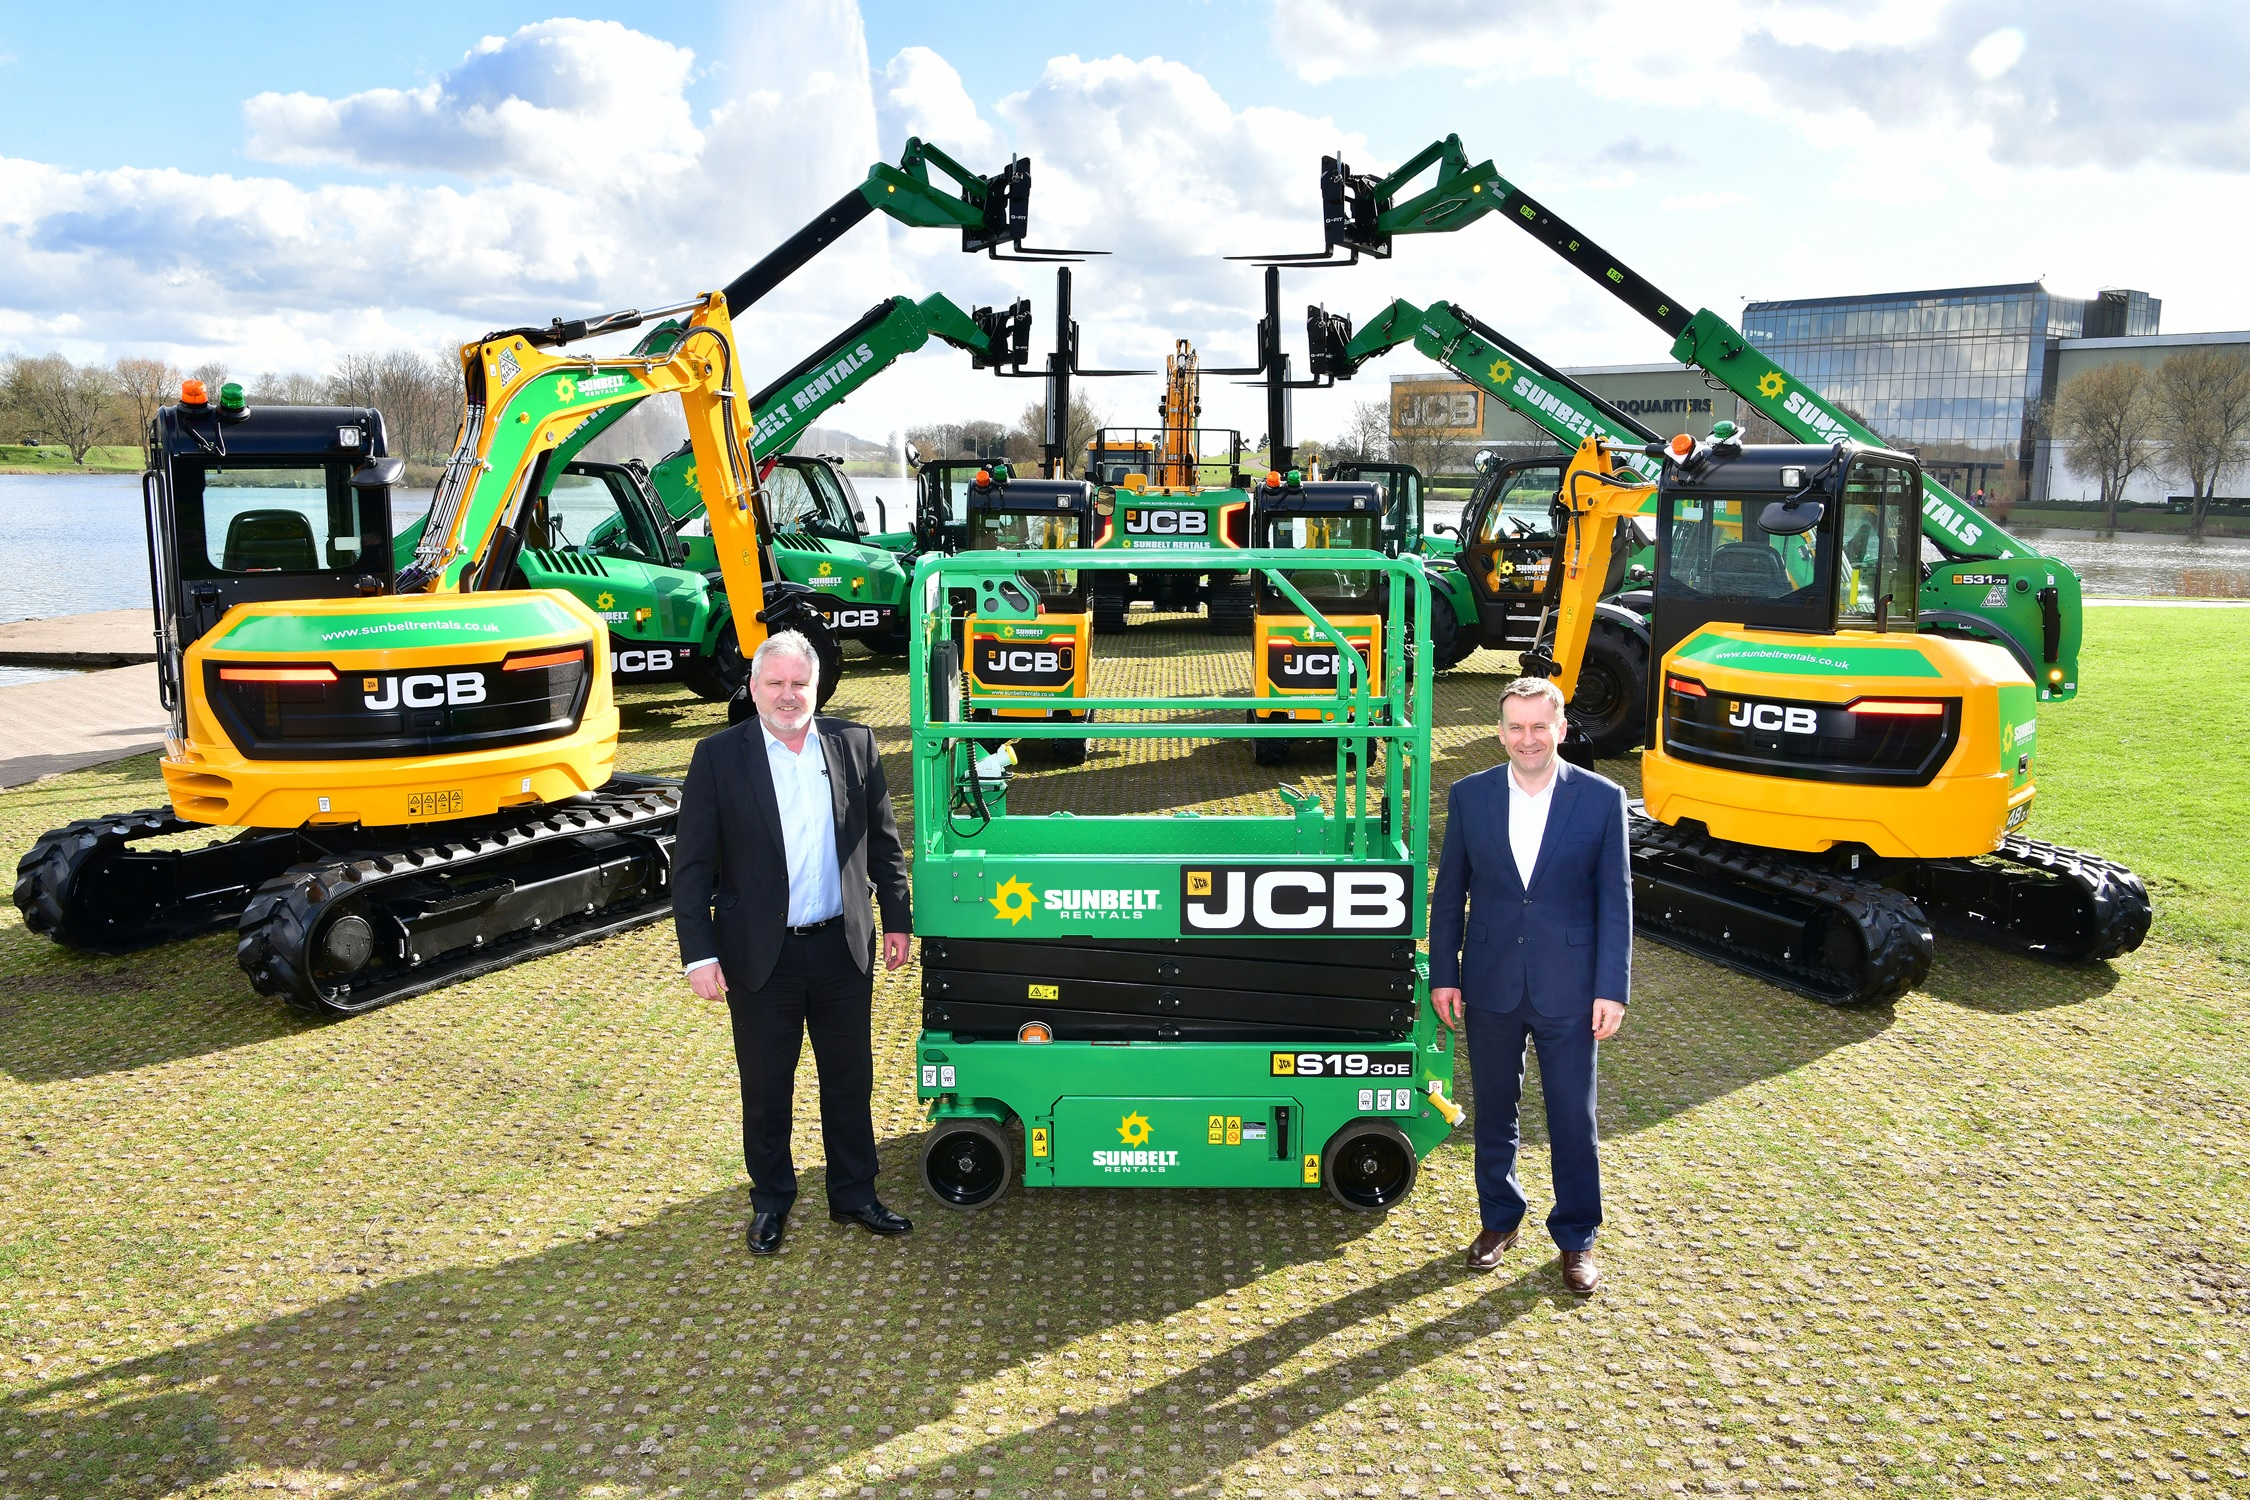 Sunbelt CEO Andy Wright pictured left with JCB CEO Graeme Macdonald